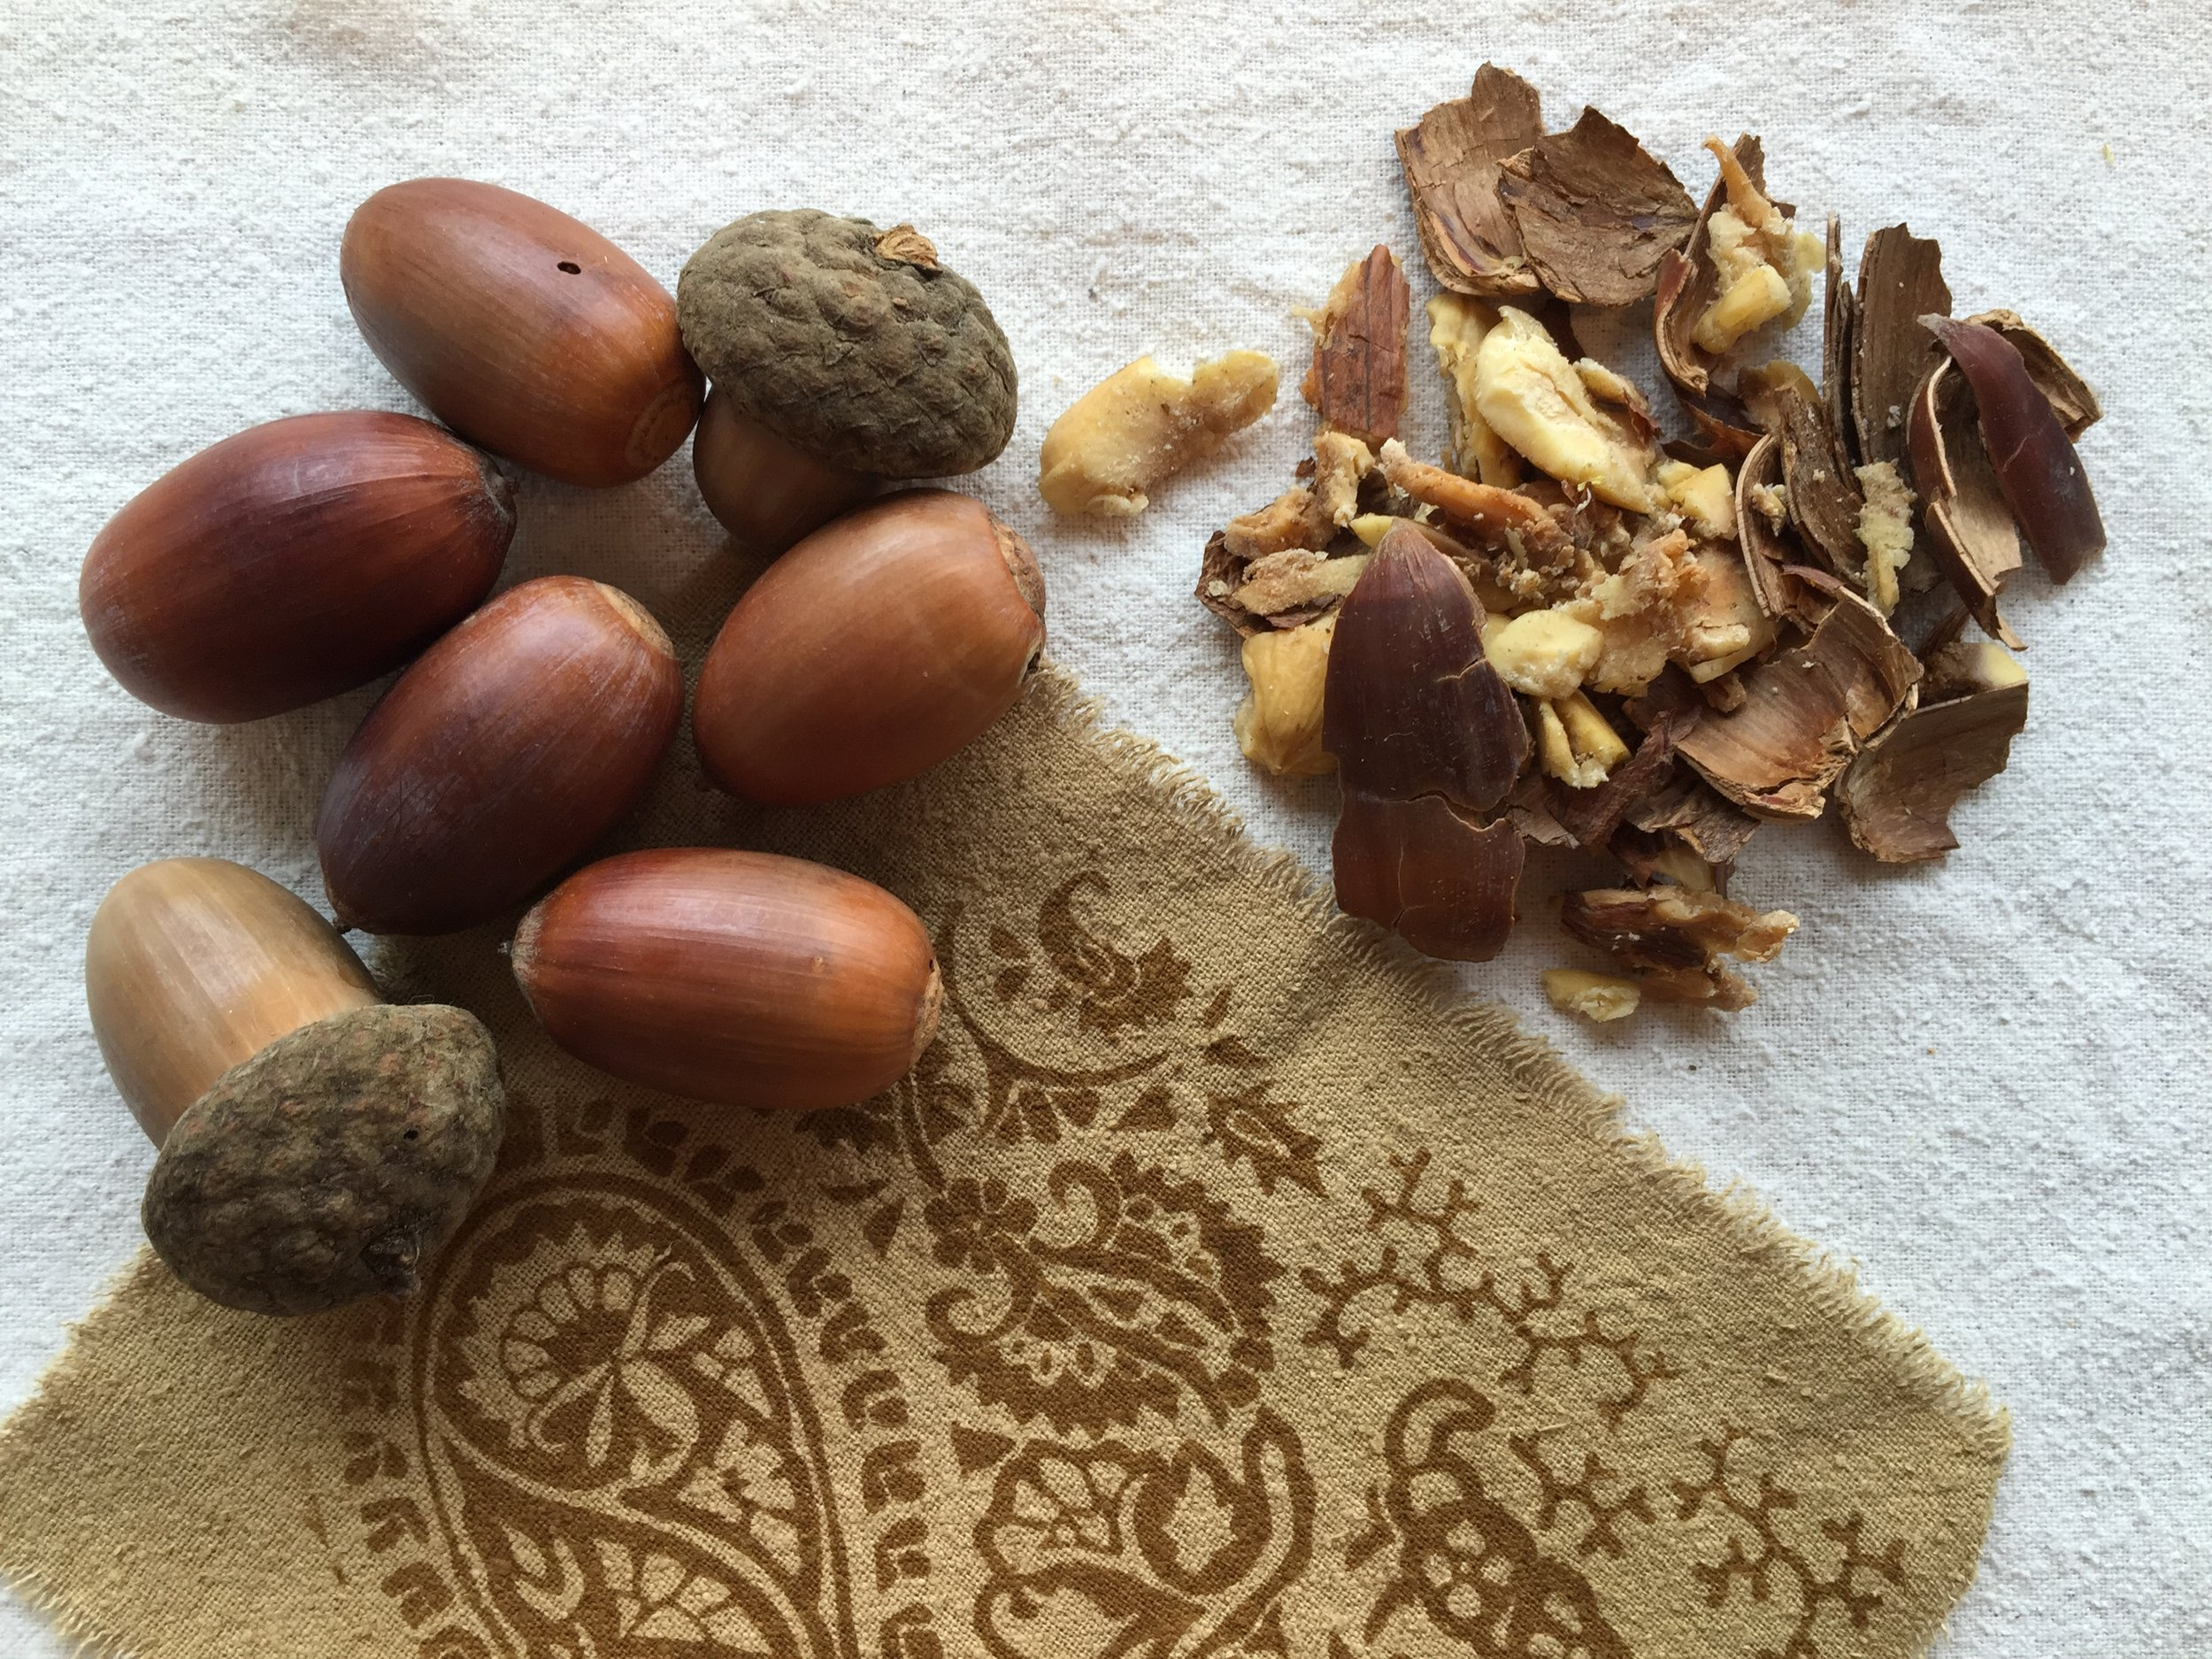 Acorns and the resulting fabric